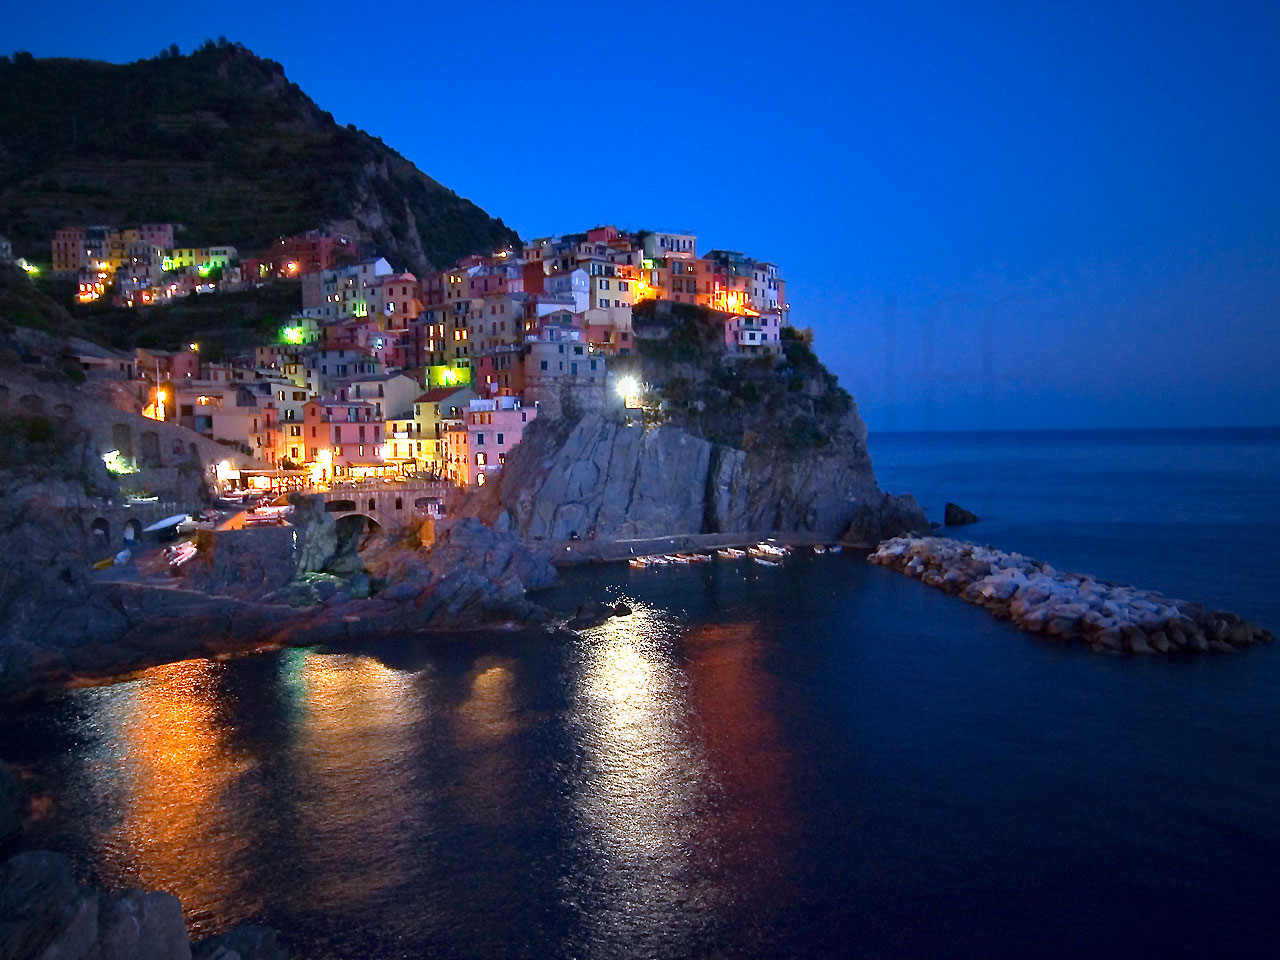 Manarola Night by Marty Wolff night sky with city in the background